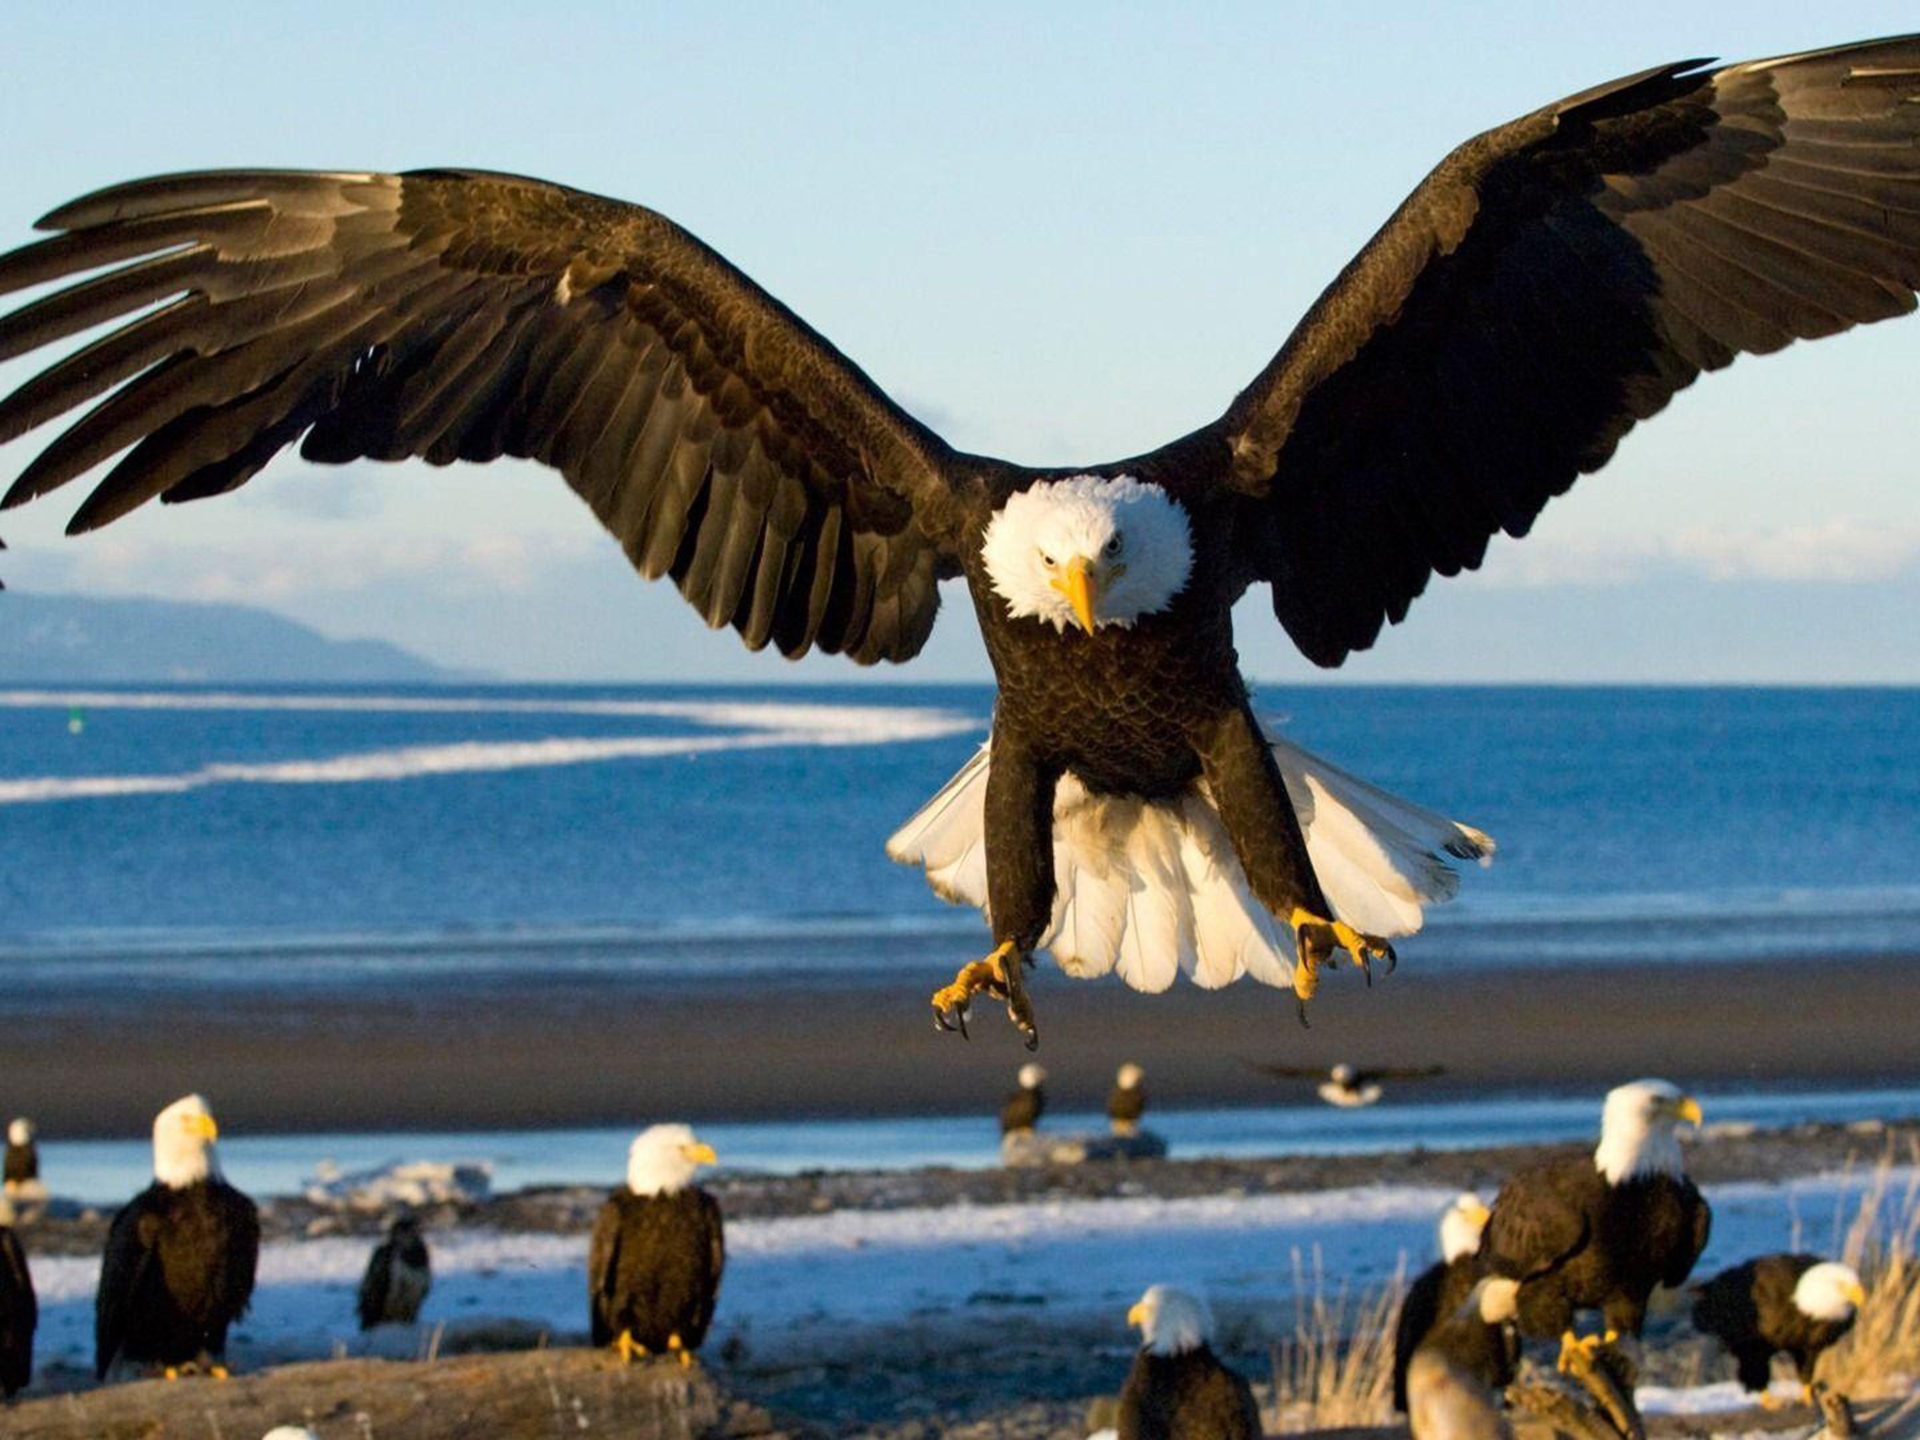 Hawk Iphone Wallpaper Eagle With Spread Wings Landing Hd Wallpapers For Laptop